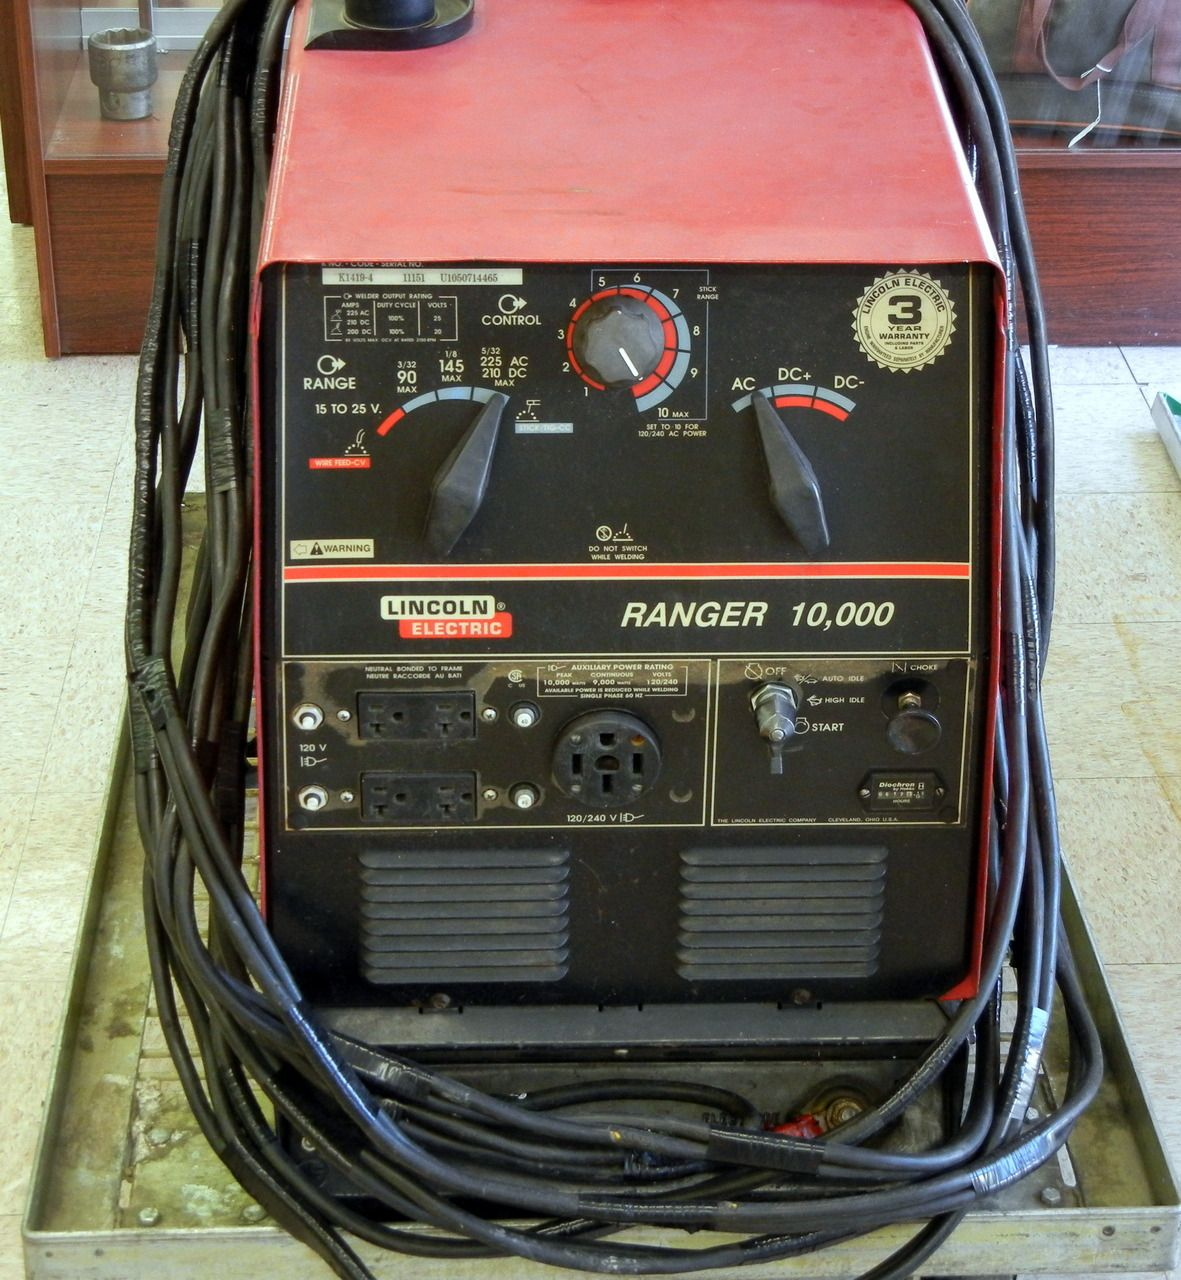 medium resolution of pin by plano pawn shop on tools welder generator welding ranger lincoln ranger 225 lincoln ranger 10000 wiring diagram